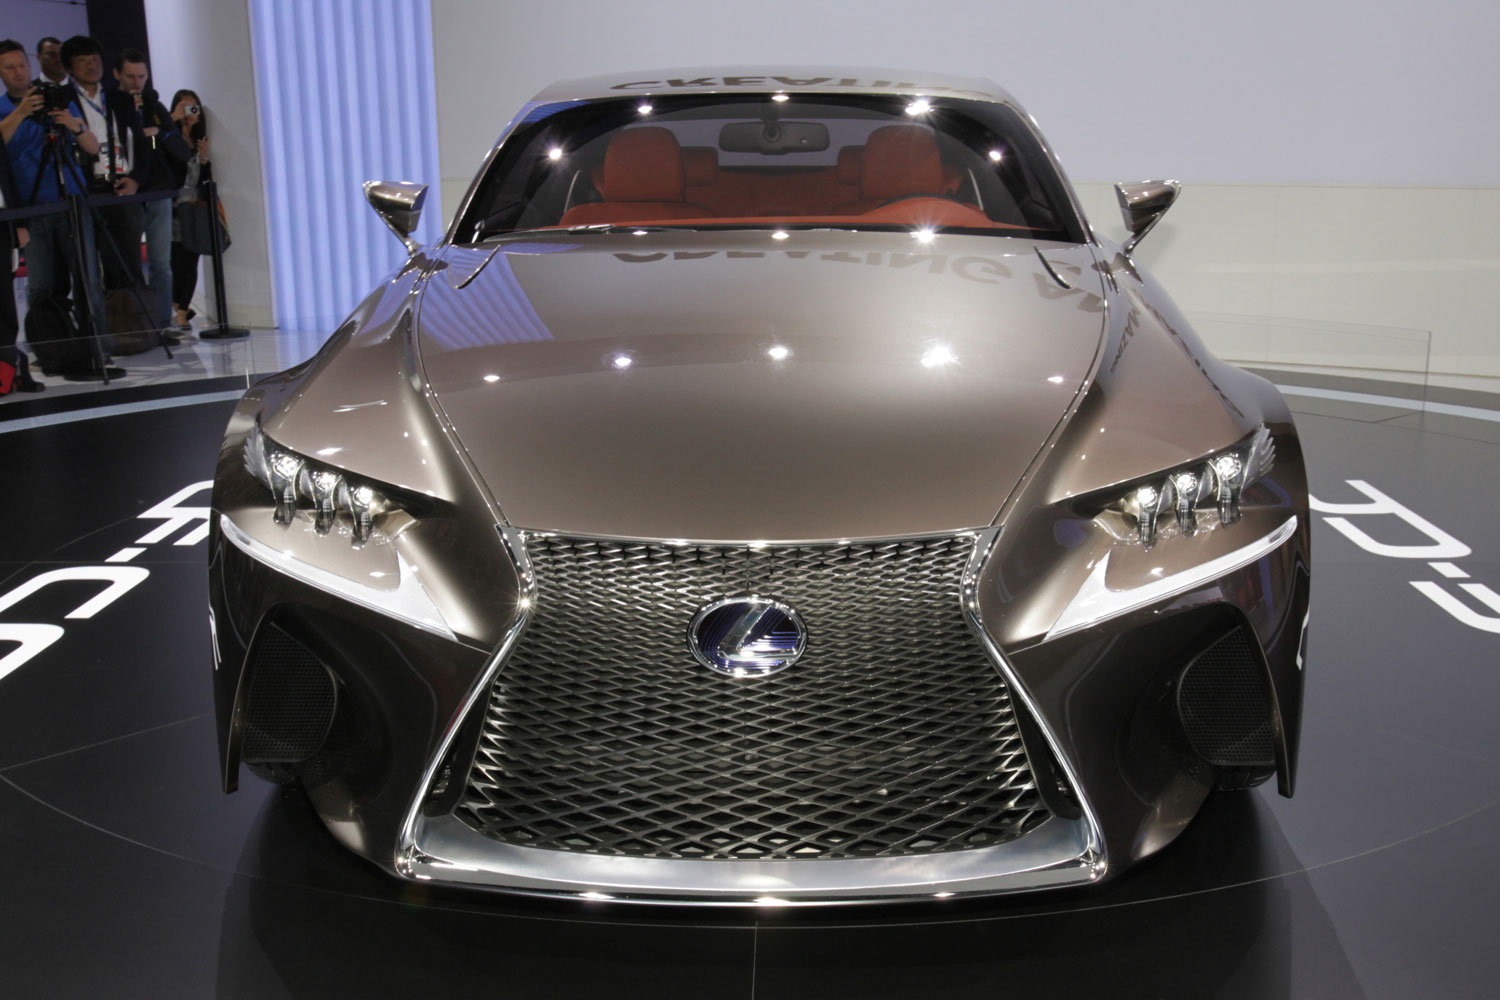 https://enthusiastnetwork.s3.amazonaws.com/uploads/sites/5/2012/09/Lexus-LF-CC-concept-front-view.jpg?impolicy=entryimage